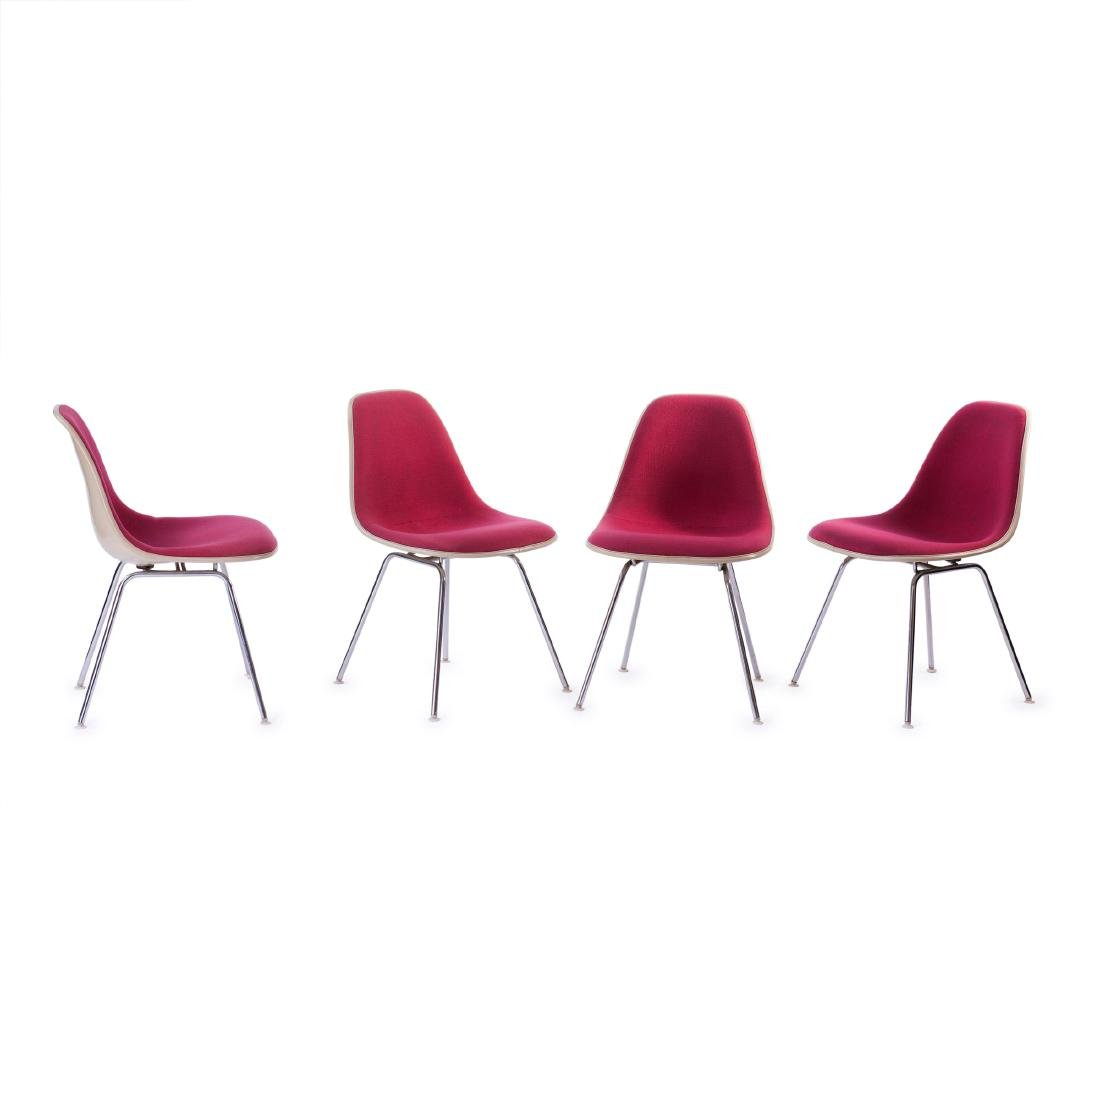 Four 'Plastic Side Chairs' on 'H' base, 1950/53